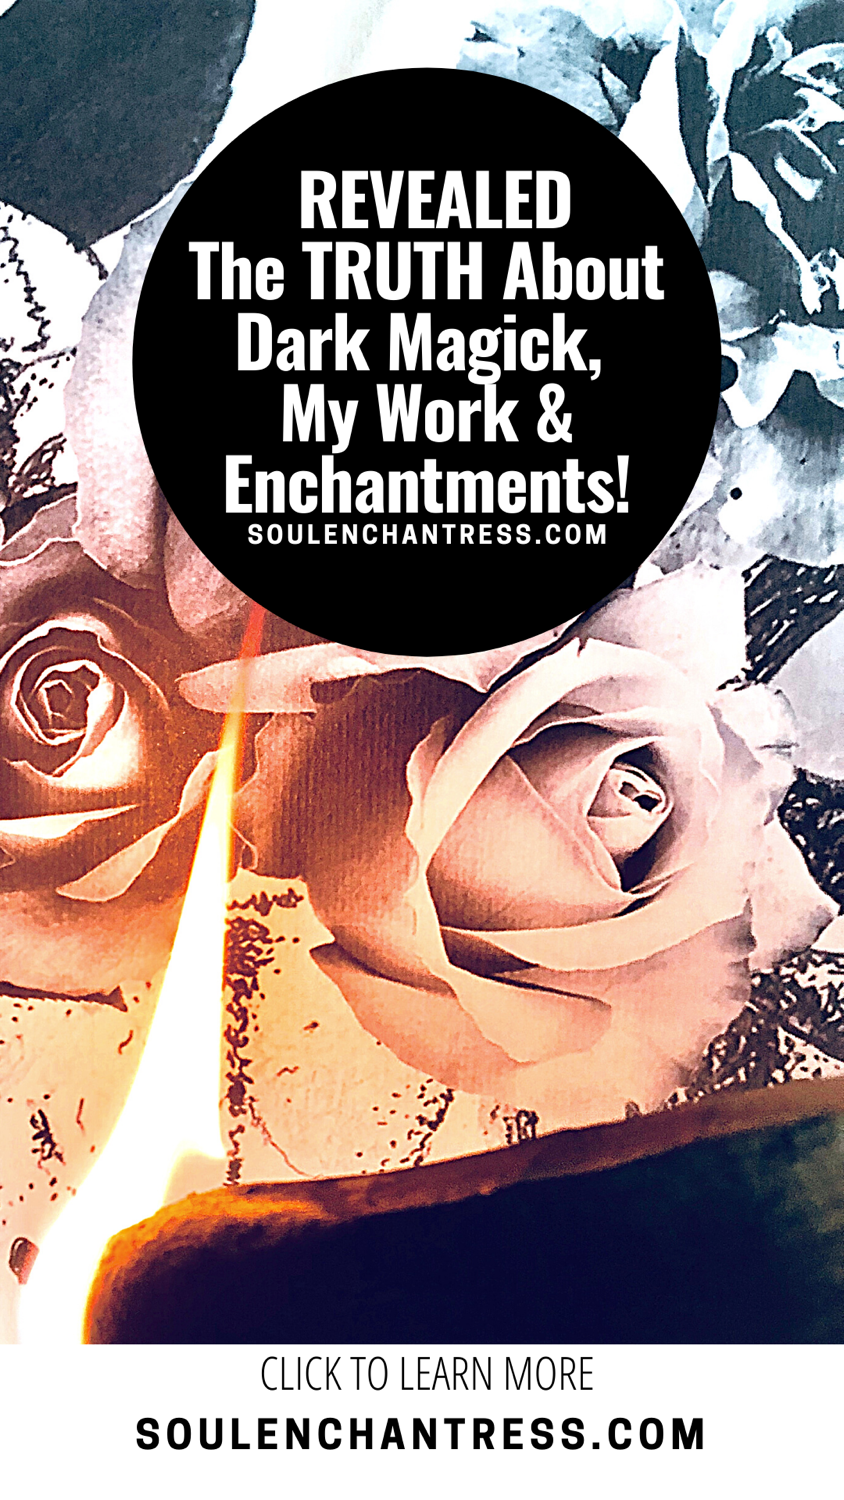 soul enchantress, wisdom codes, sacred money making, peaceful living, prosperous life, dark magick, Ancient Egypt, sacred prosperity, wealth codes, introverts and money